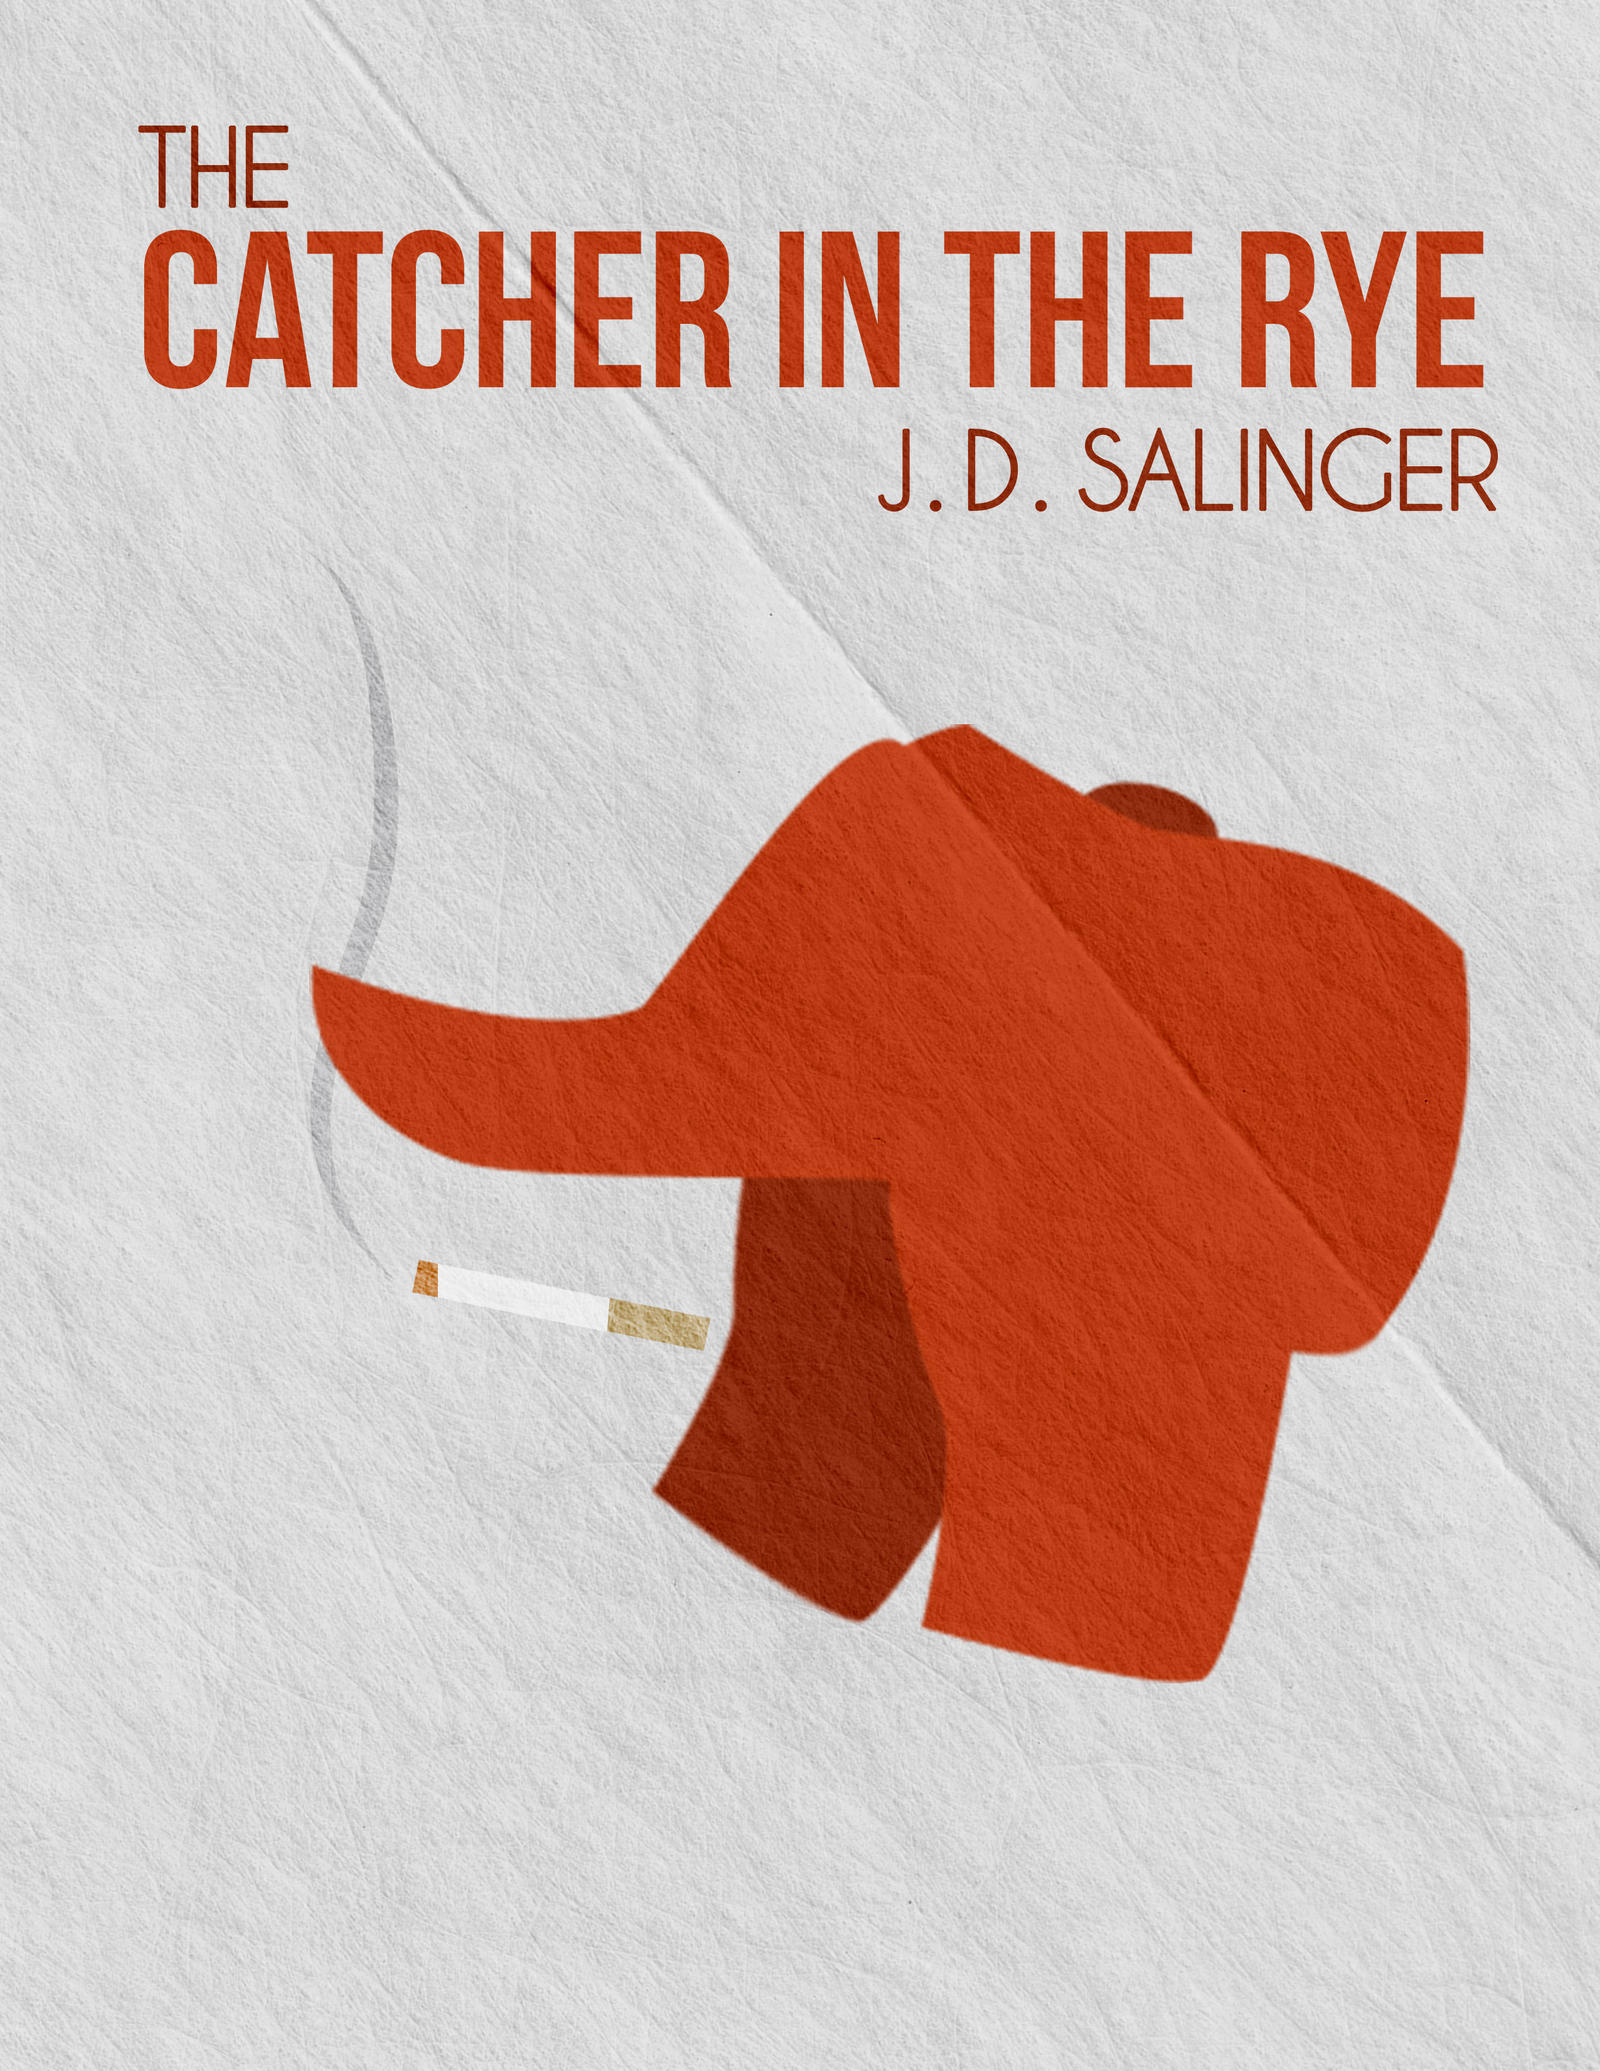 the catcher in the rye and I imagined it so differently i would hand the catcher in the rye to my students and watch it transform their lives they would see themselves in holden caulfield , and jd salinger's words would elucidate their own frustrations and struggles they would write righteous screeds against phoniness, start.